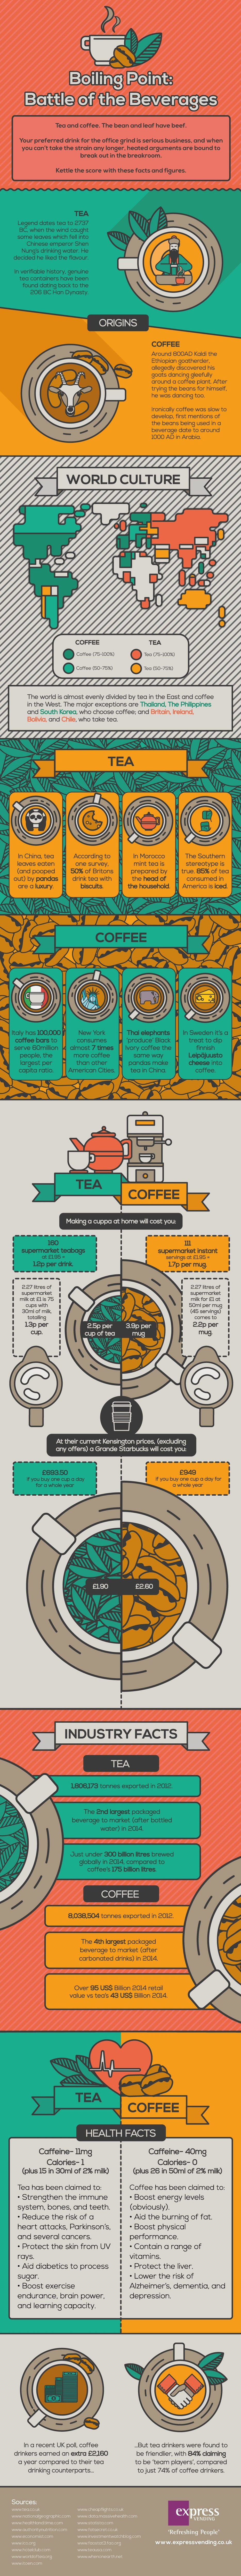 Boiling Point: Battle of the Beverages #infographic